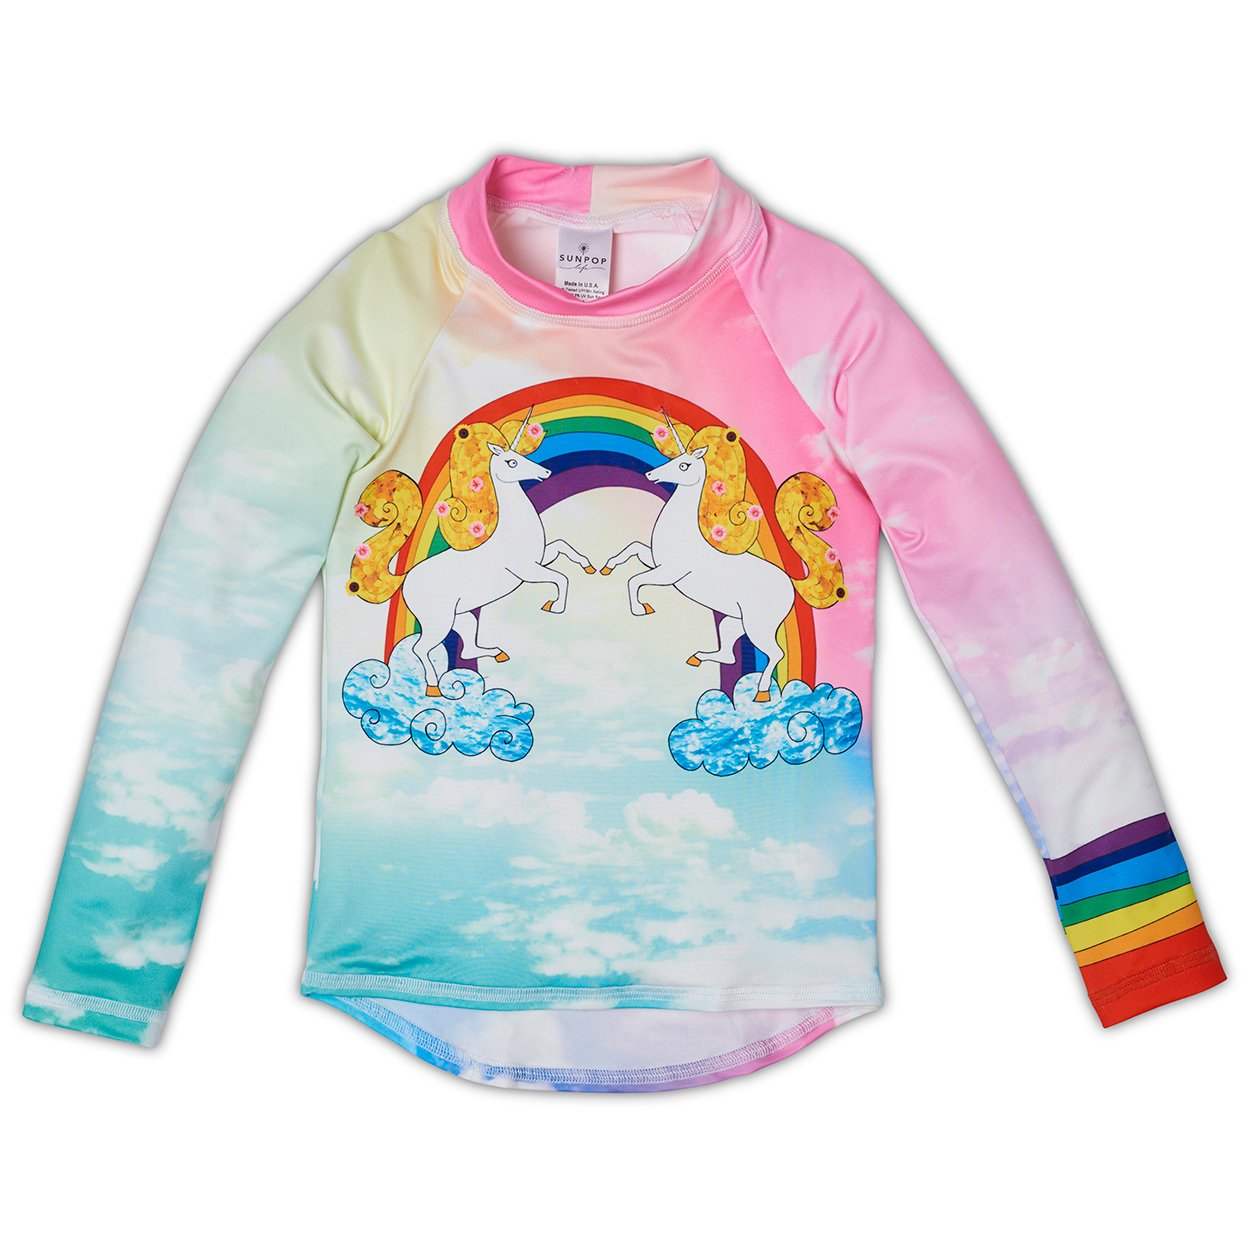 Lucky Unicorns Rash Guard Top UPF 50+ for Girls